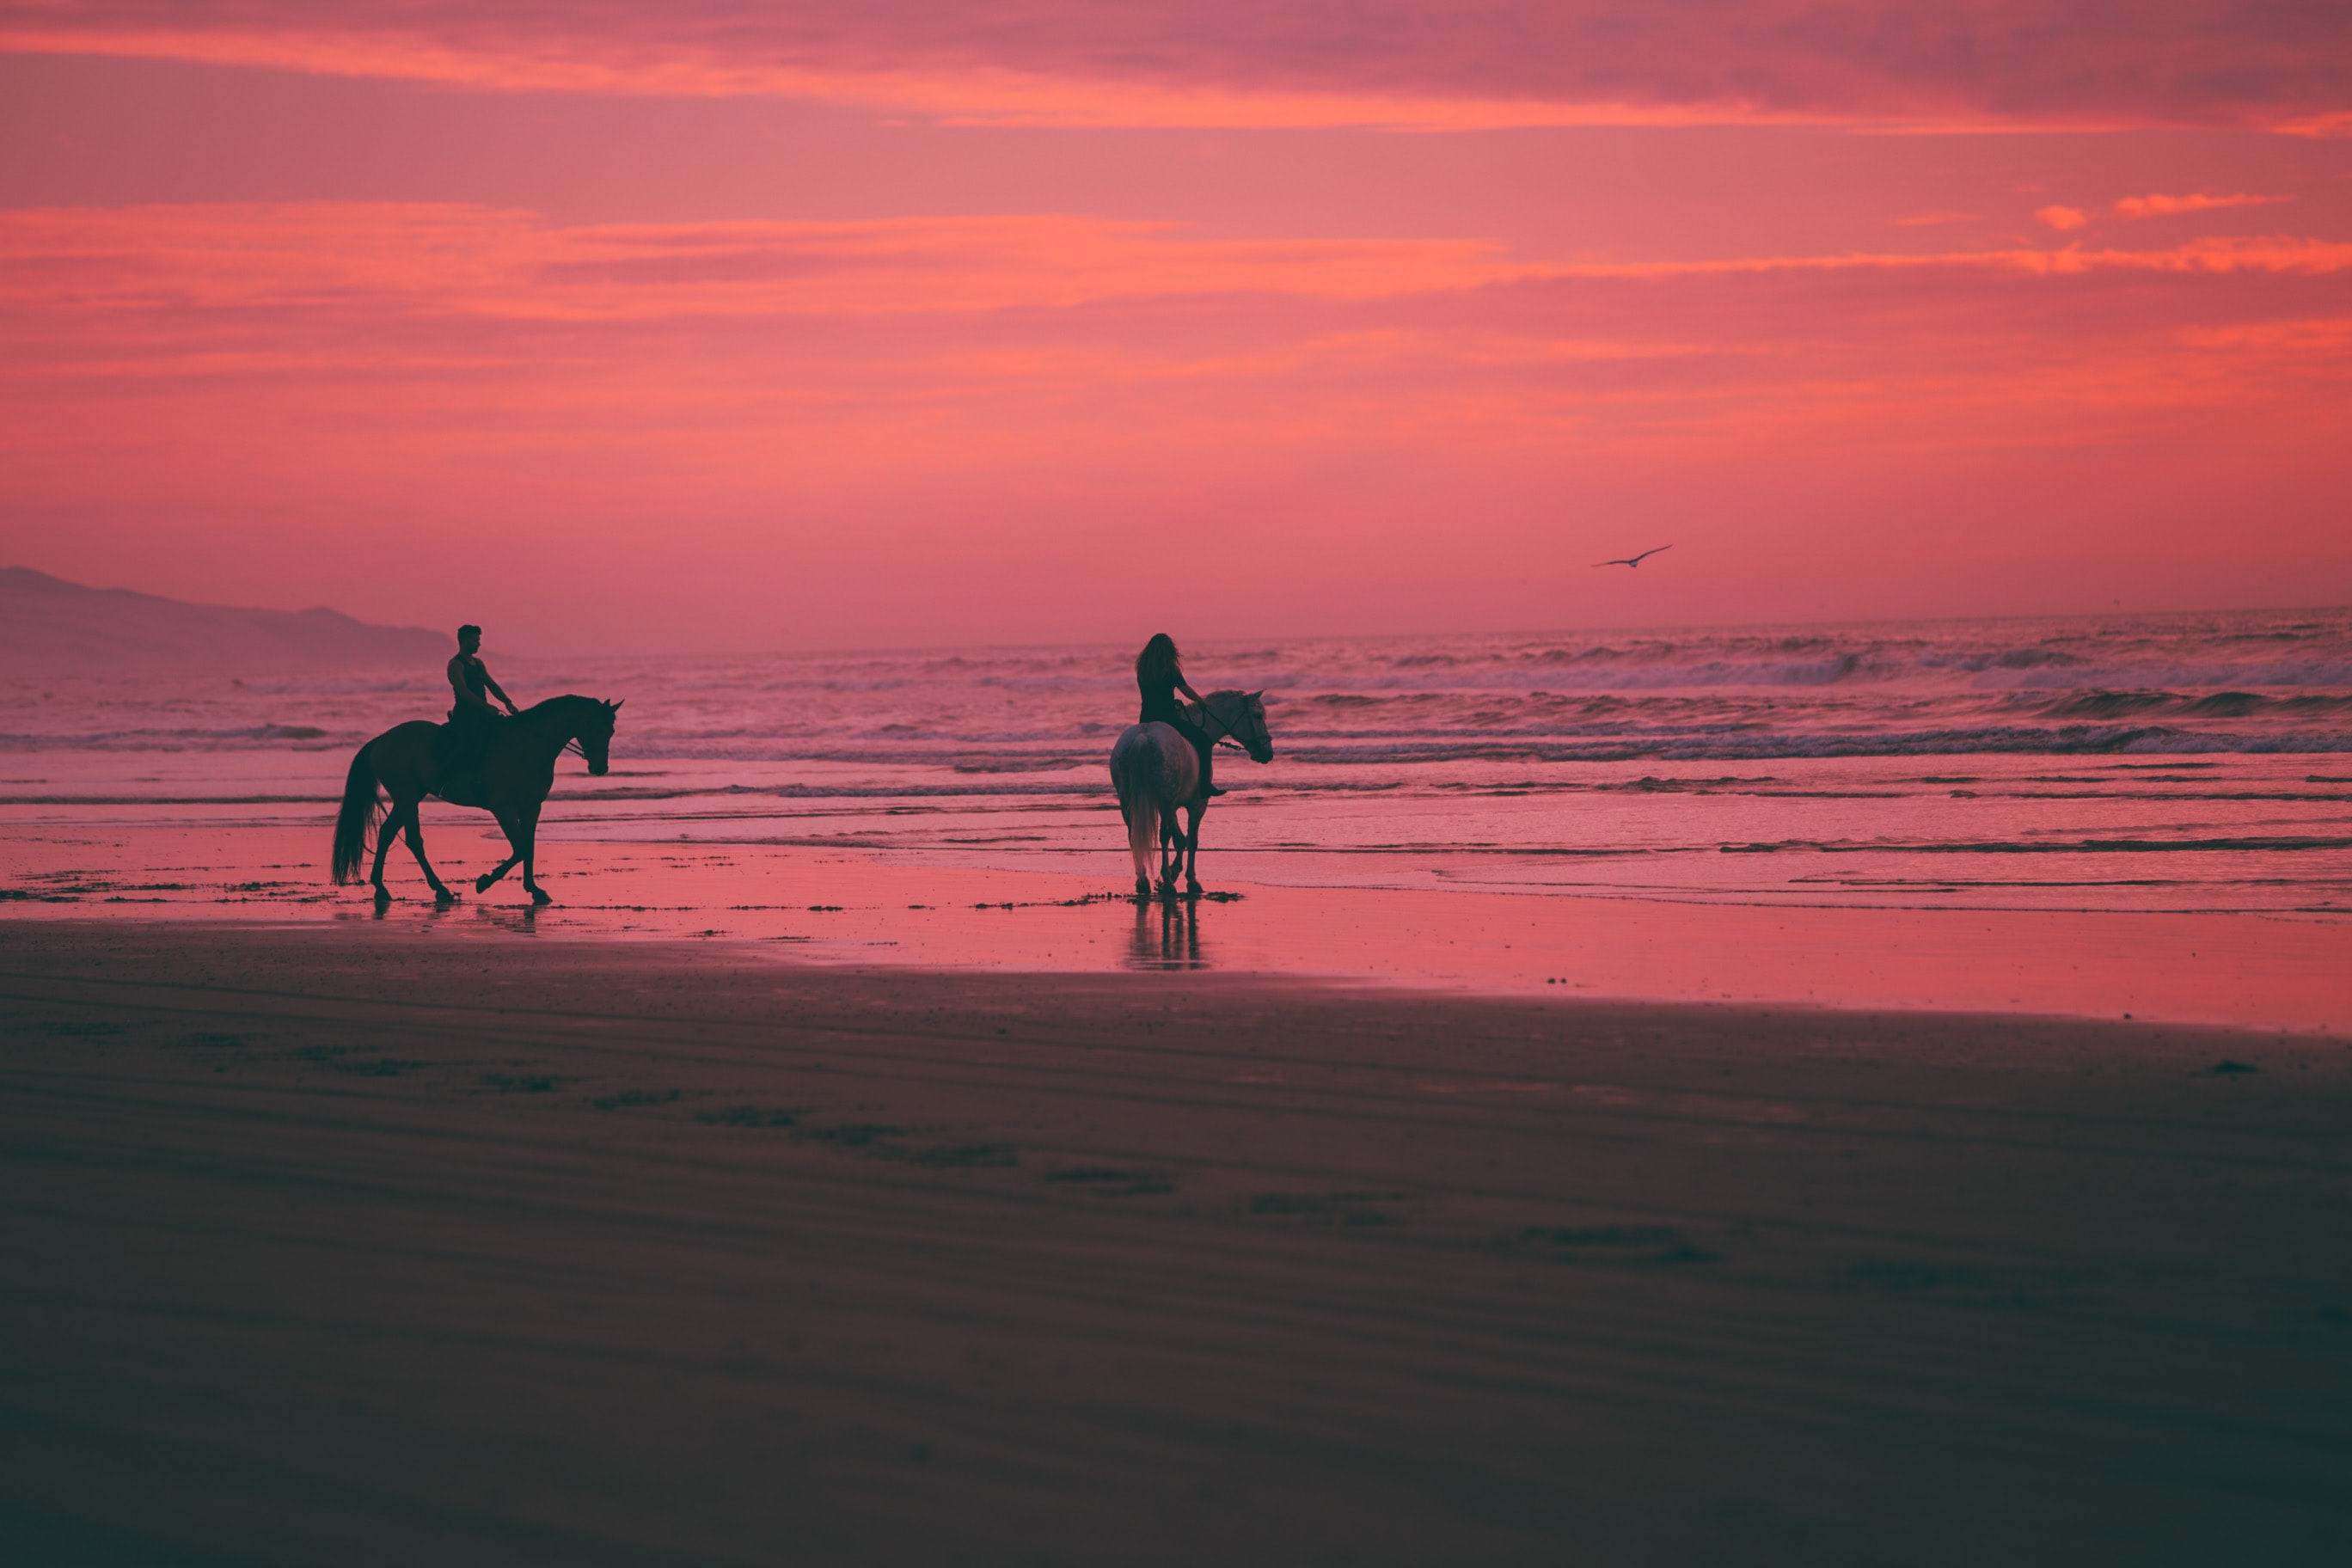 Two Person Riding Horses On Seashore Photo Free Beach Image On Unsplash